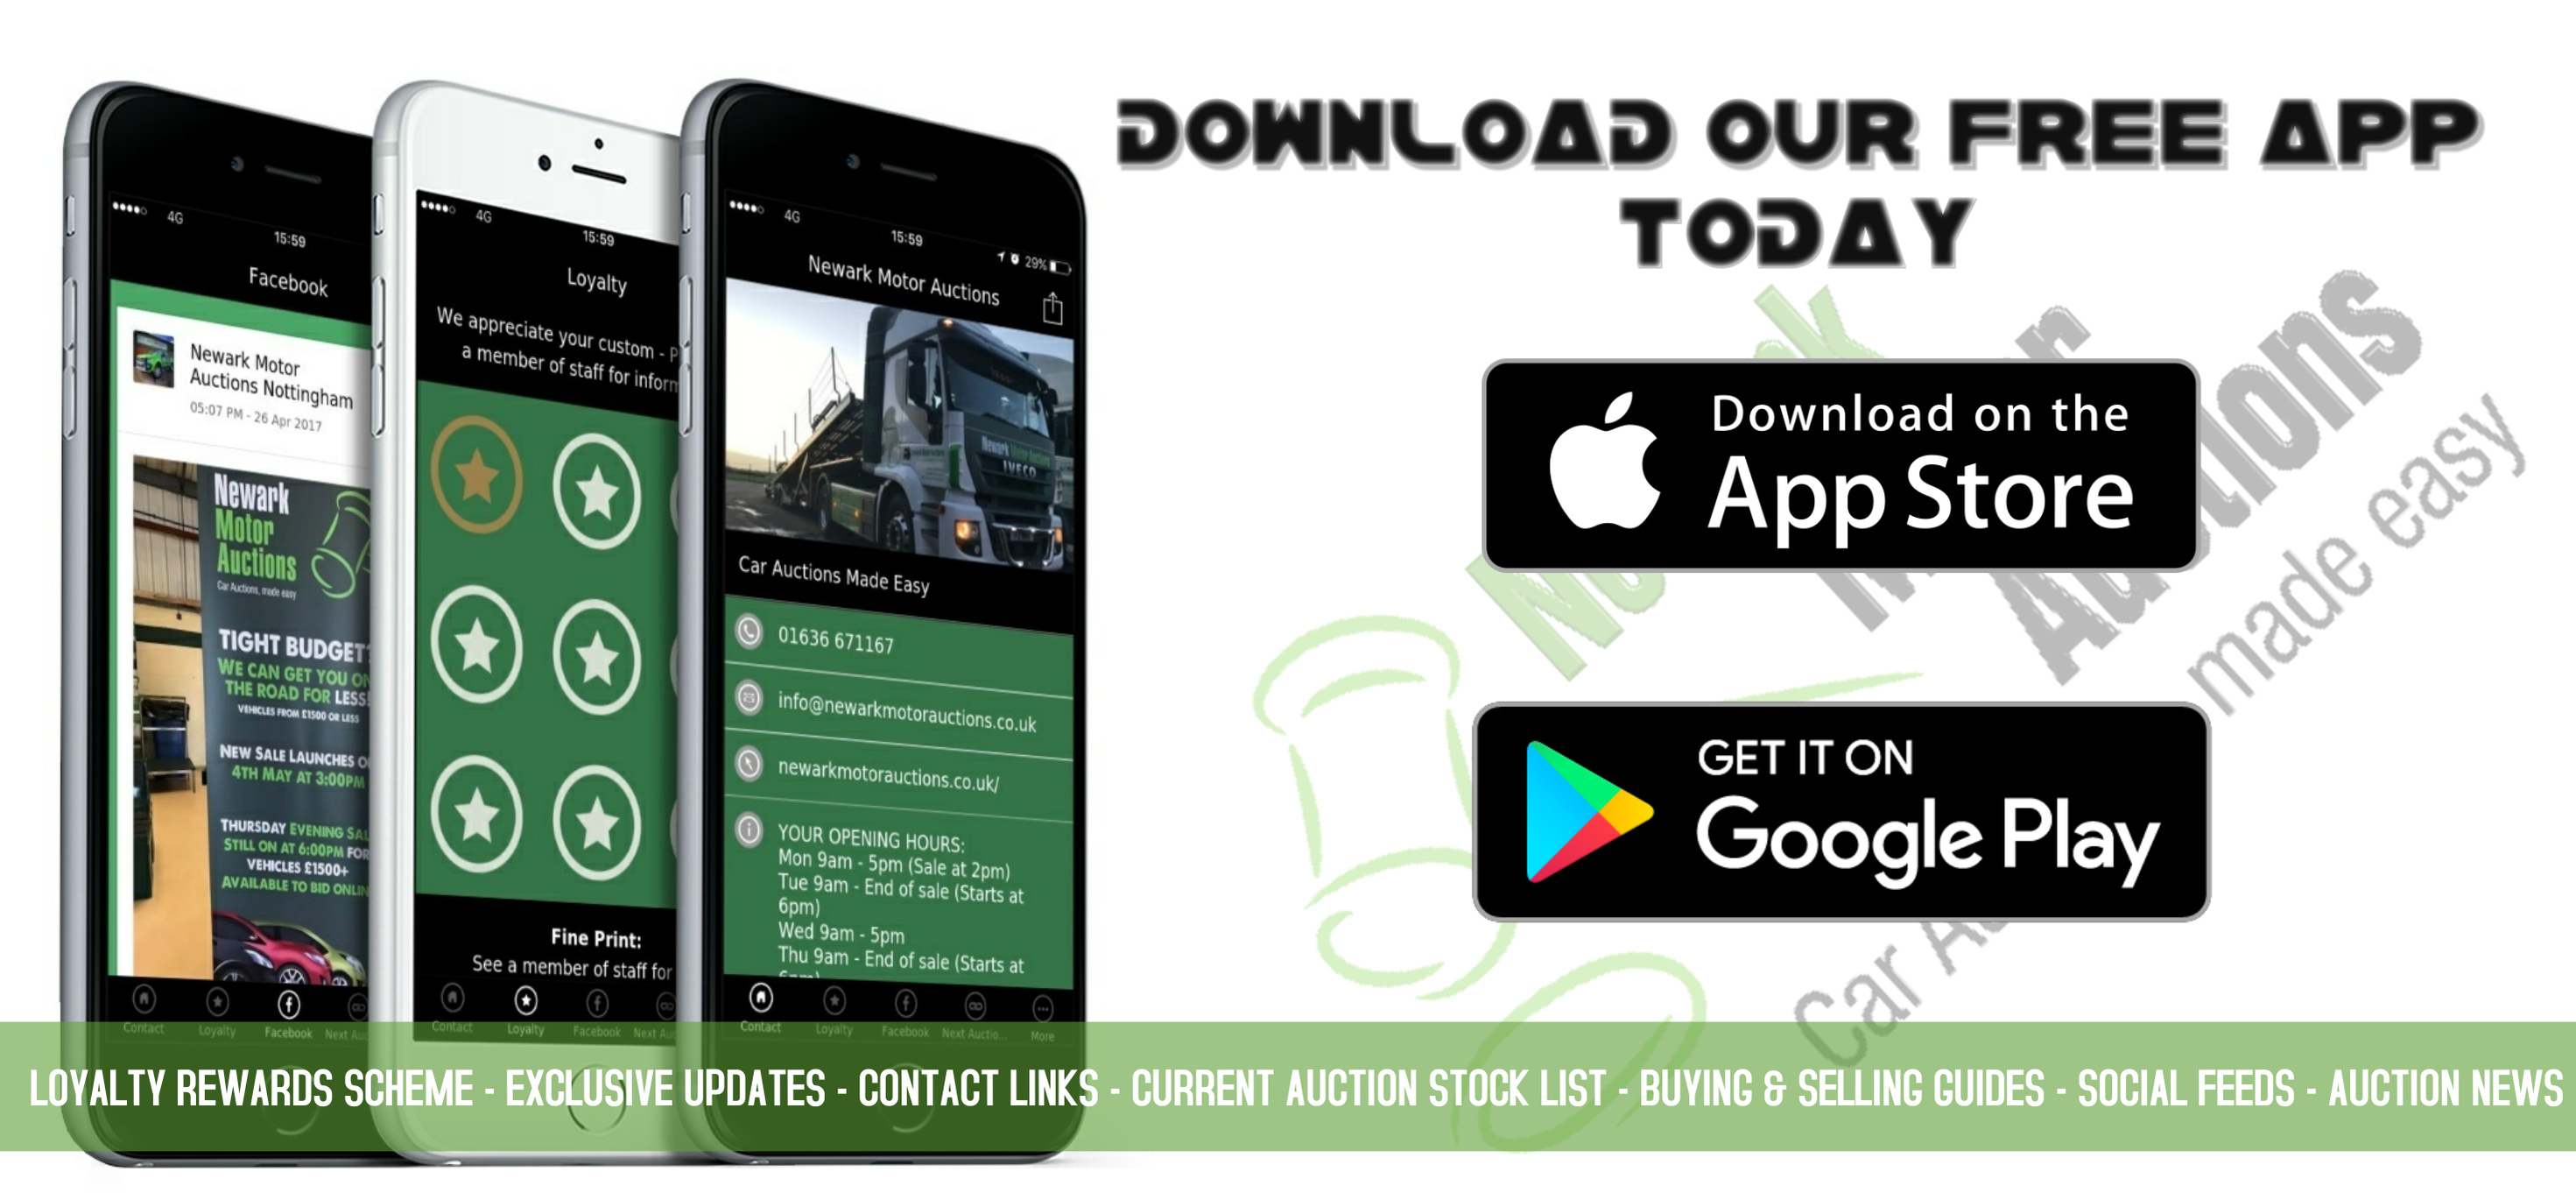 Car Auction Apps >> Car Auctions Newark Motor Auctions In Nottingham